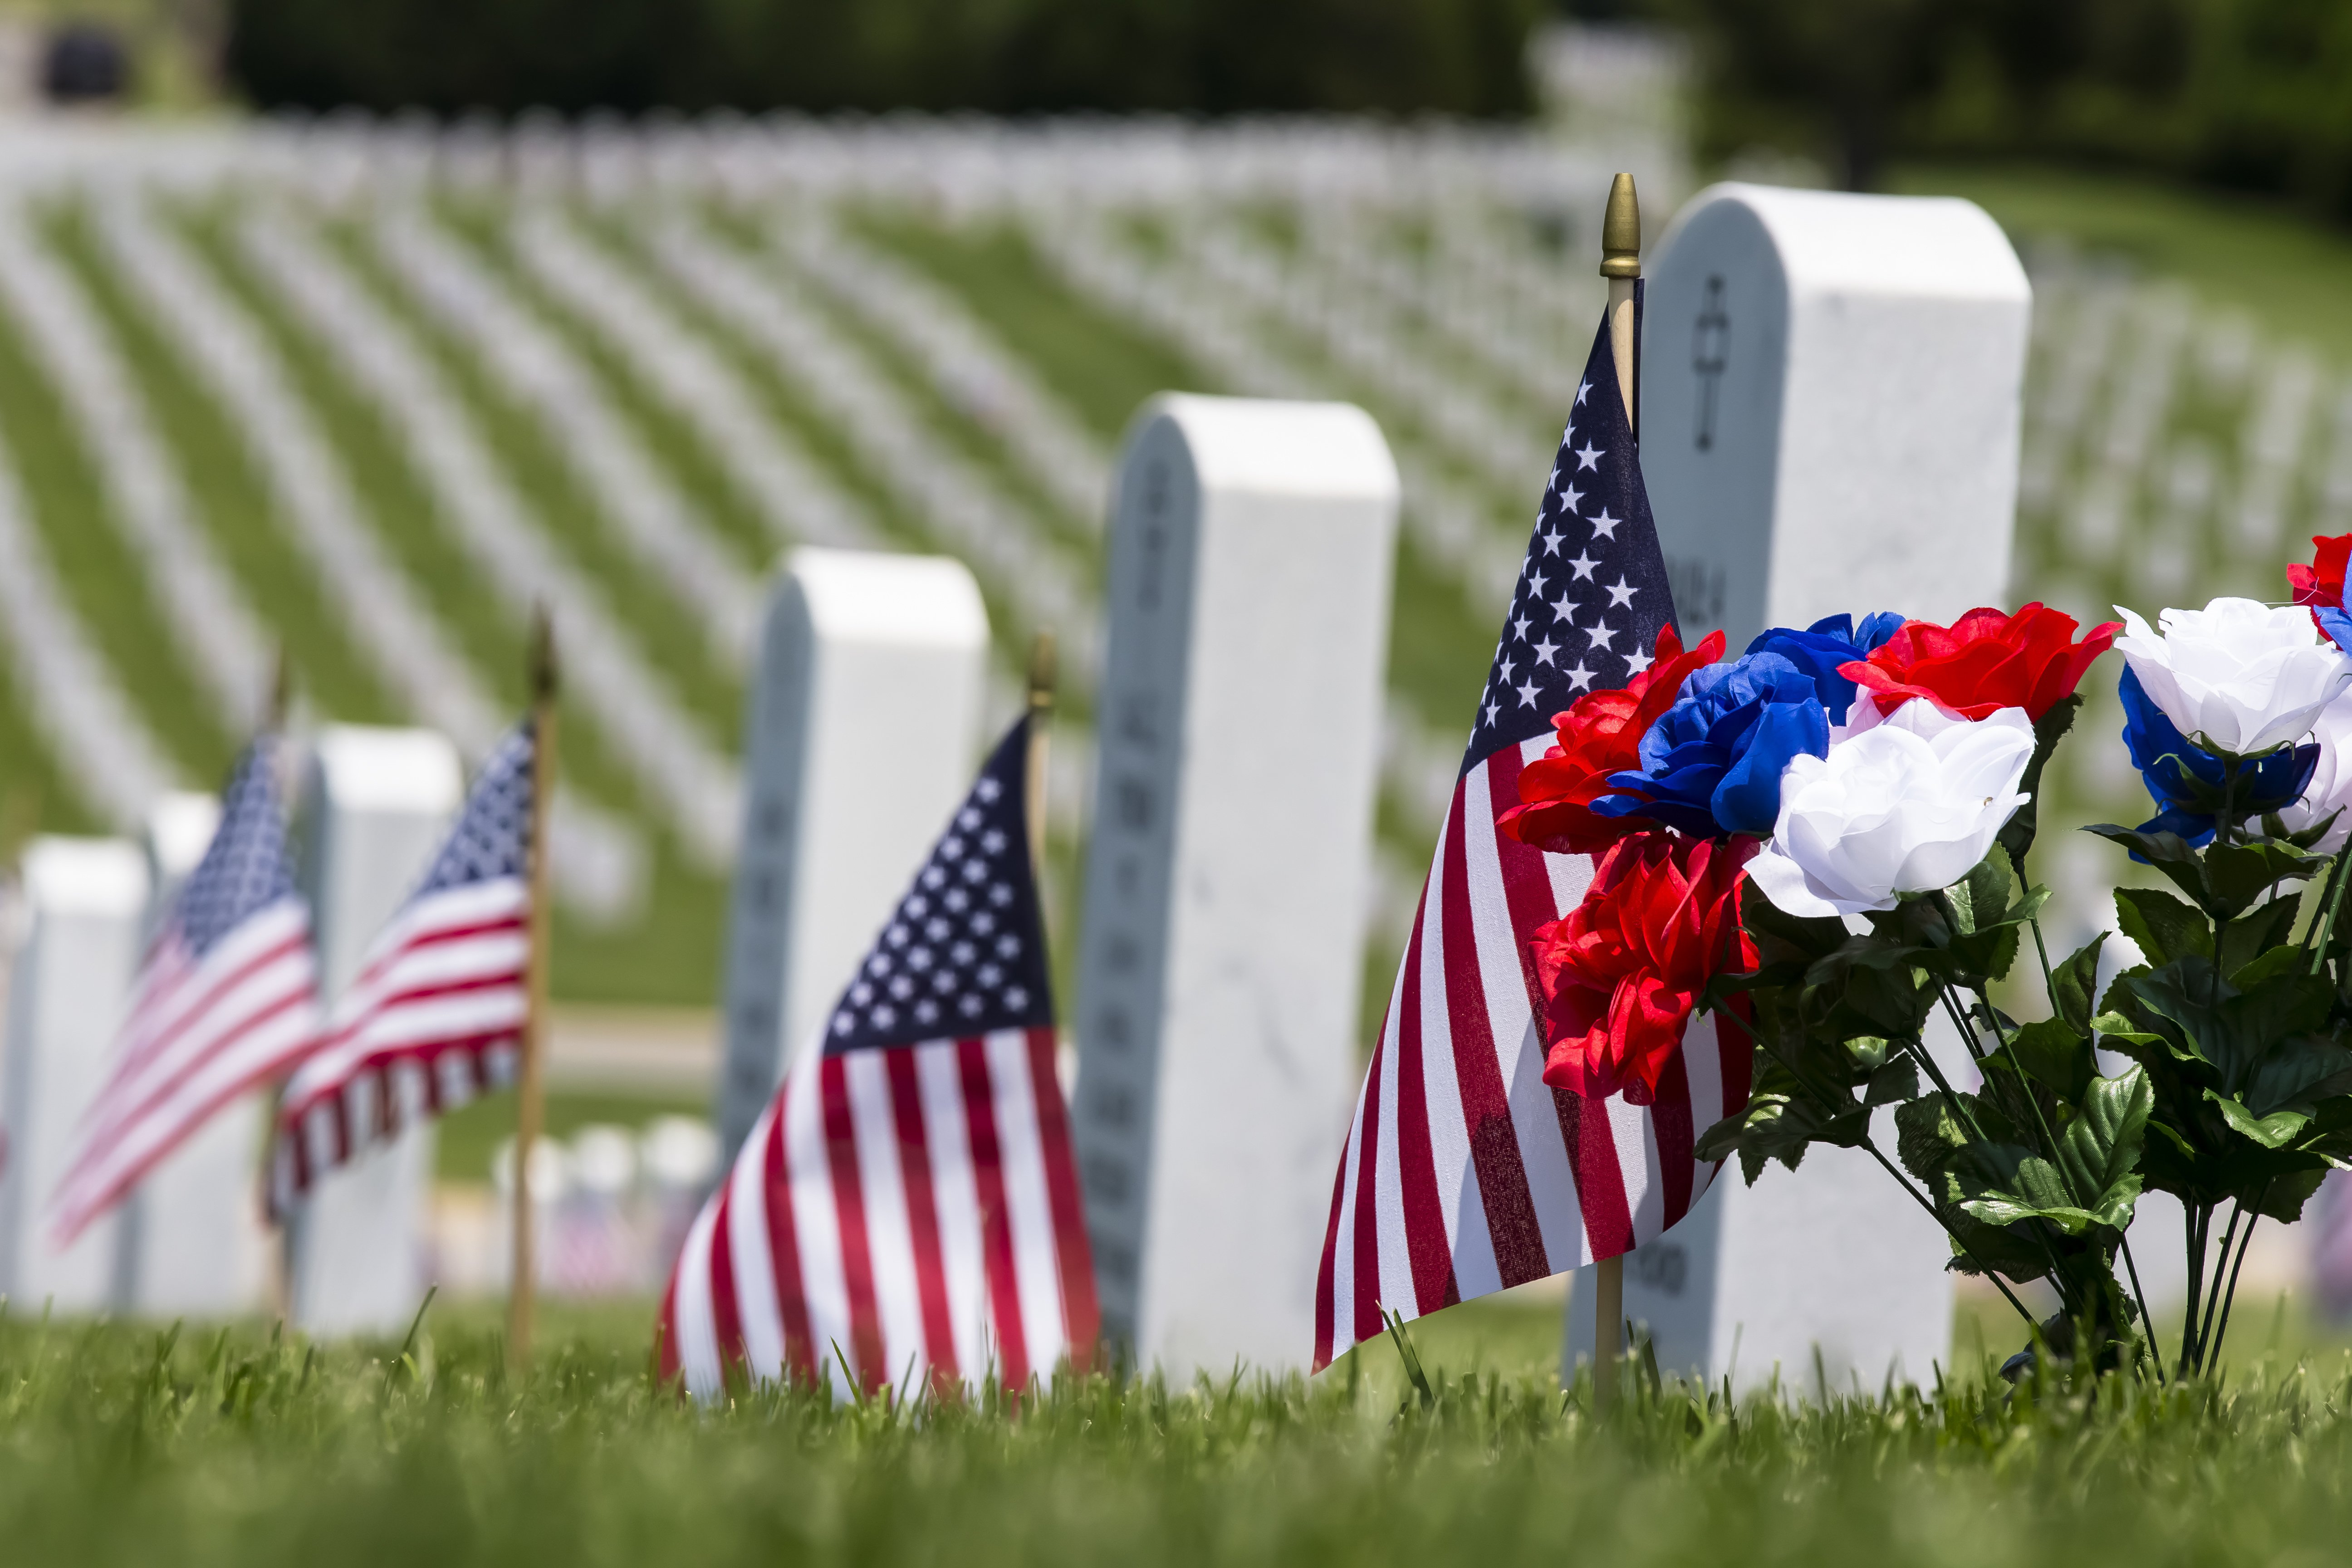 http://wtop.com/wp-content/uploads/2017/05/Memorial-Day.jpeg